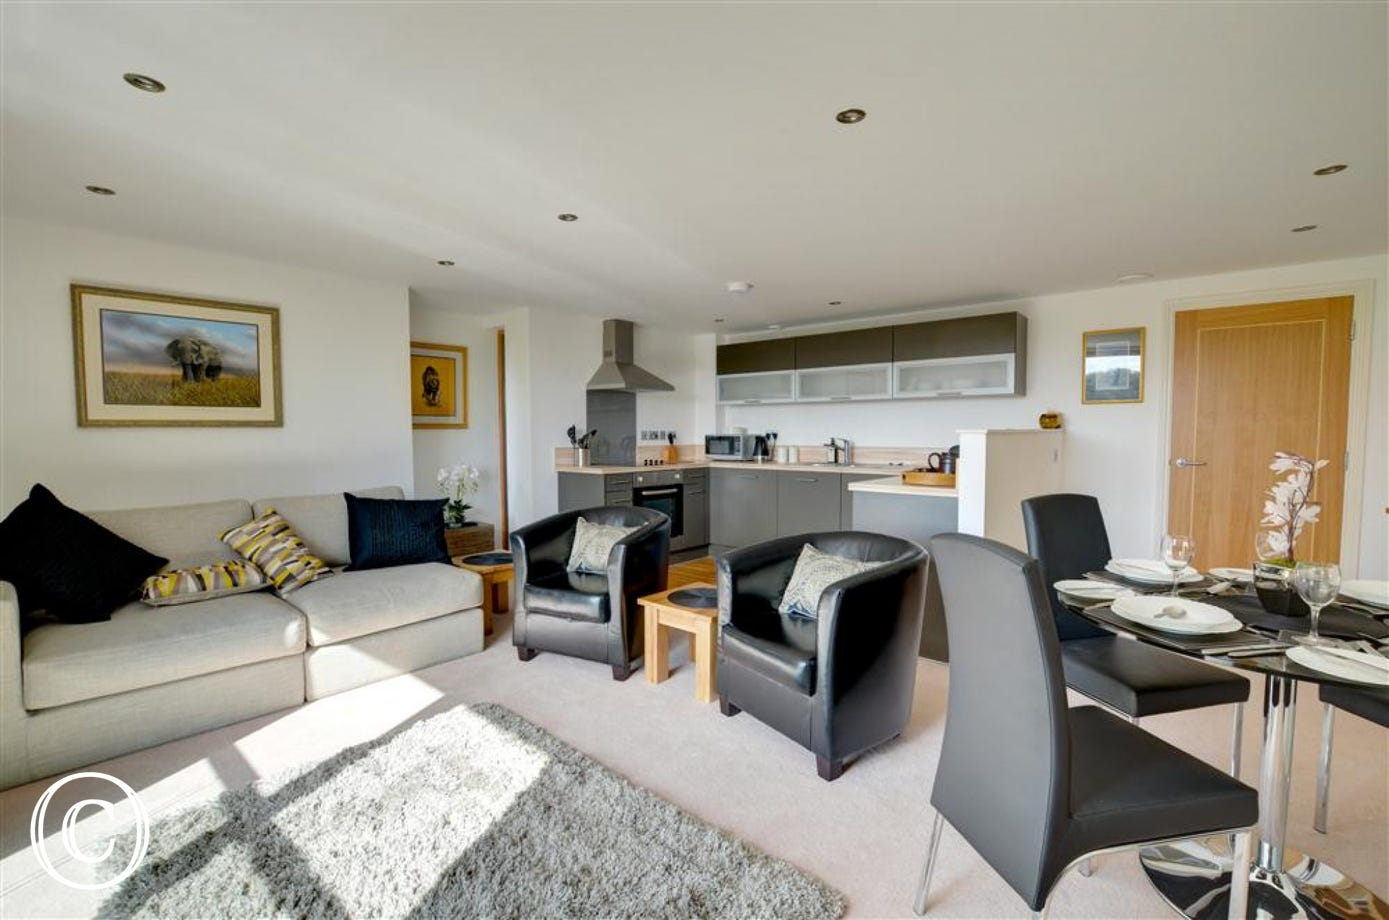 This view shows the large comfortable sofa as well as the dining area and kitchen